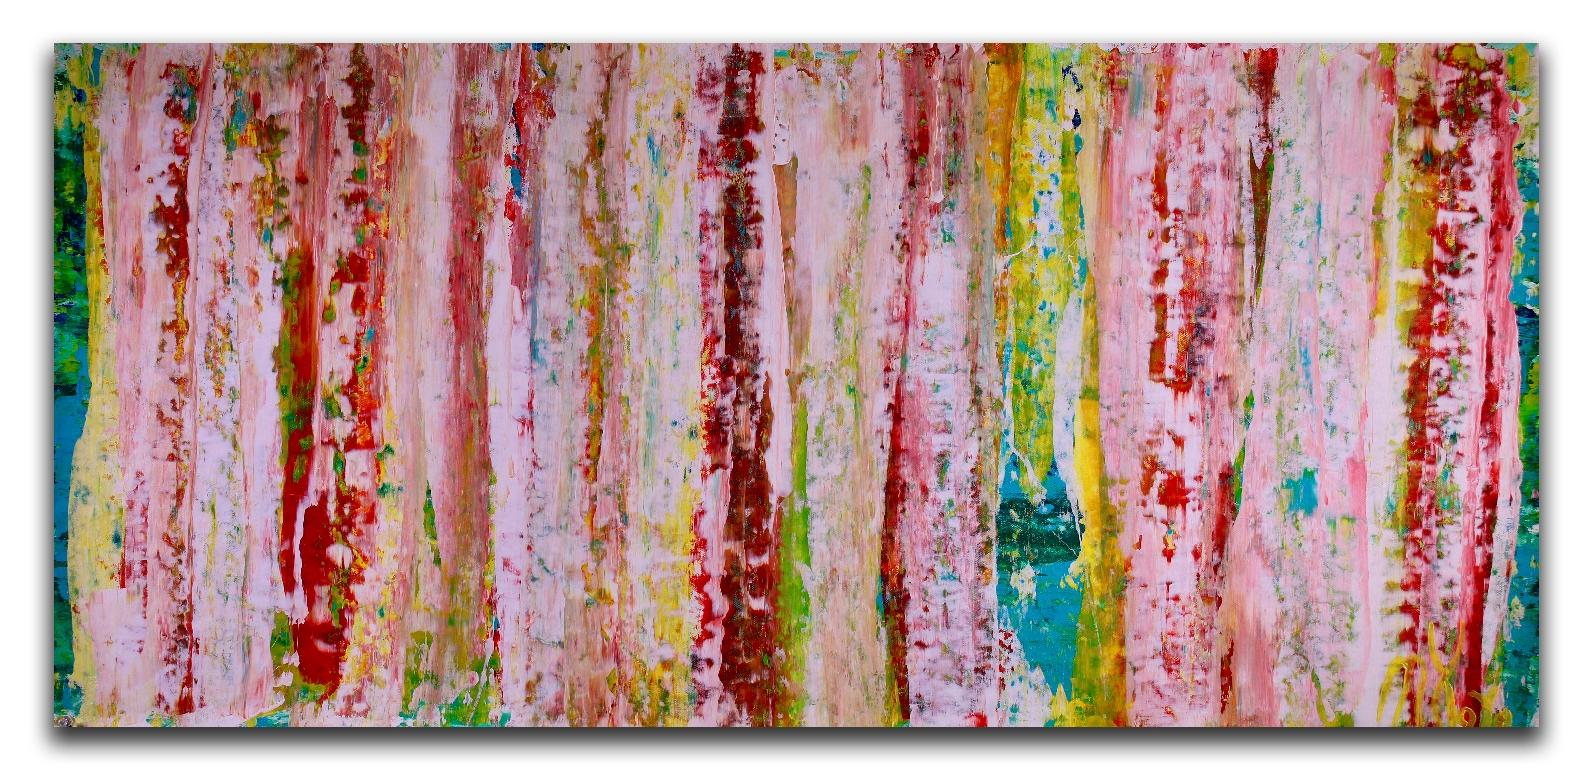 Landscape expressions No.1 (2018) expressionistic Acrylic painting by Nestor Toro